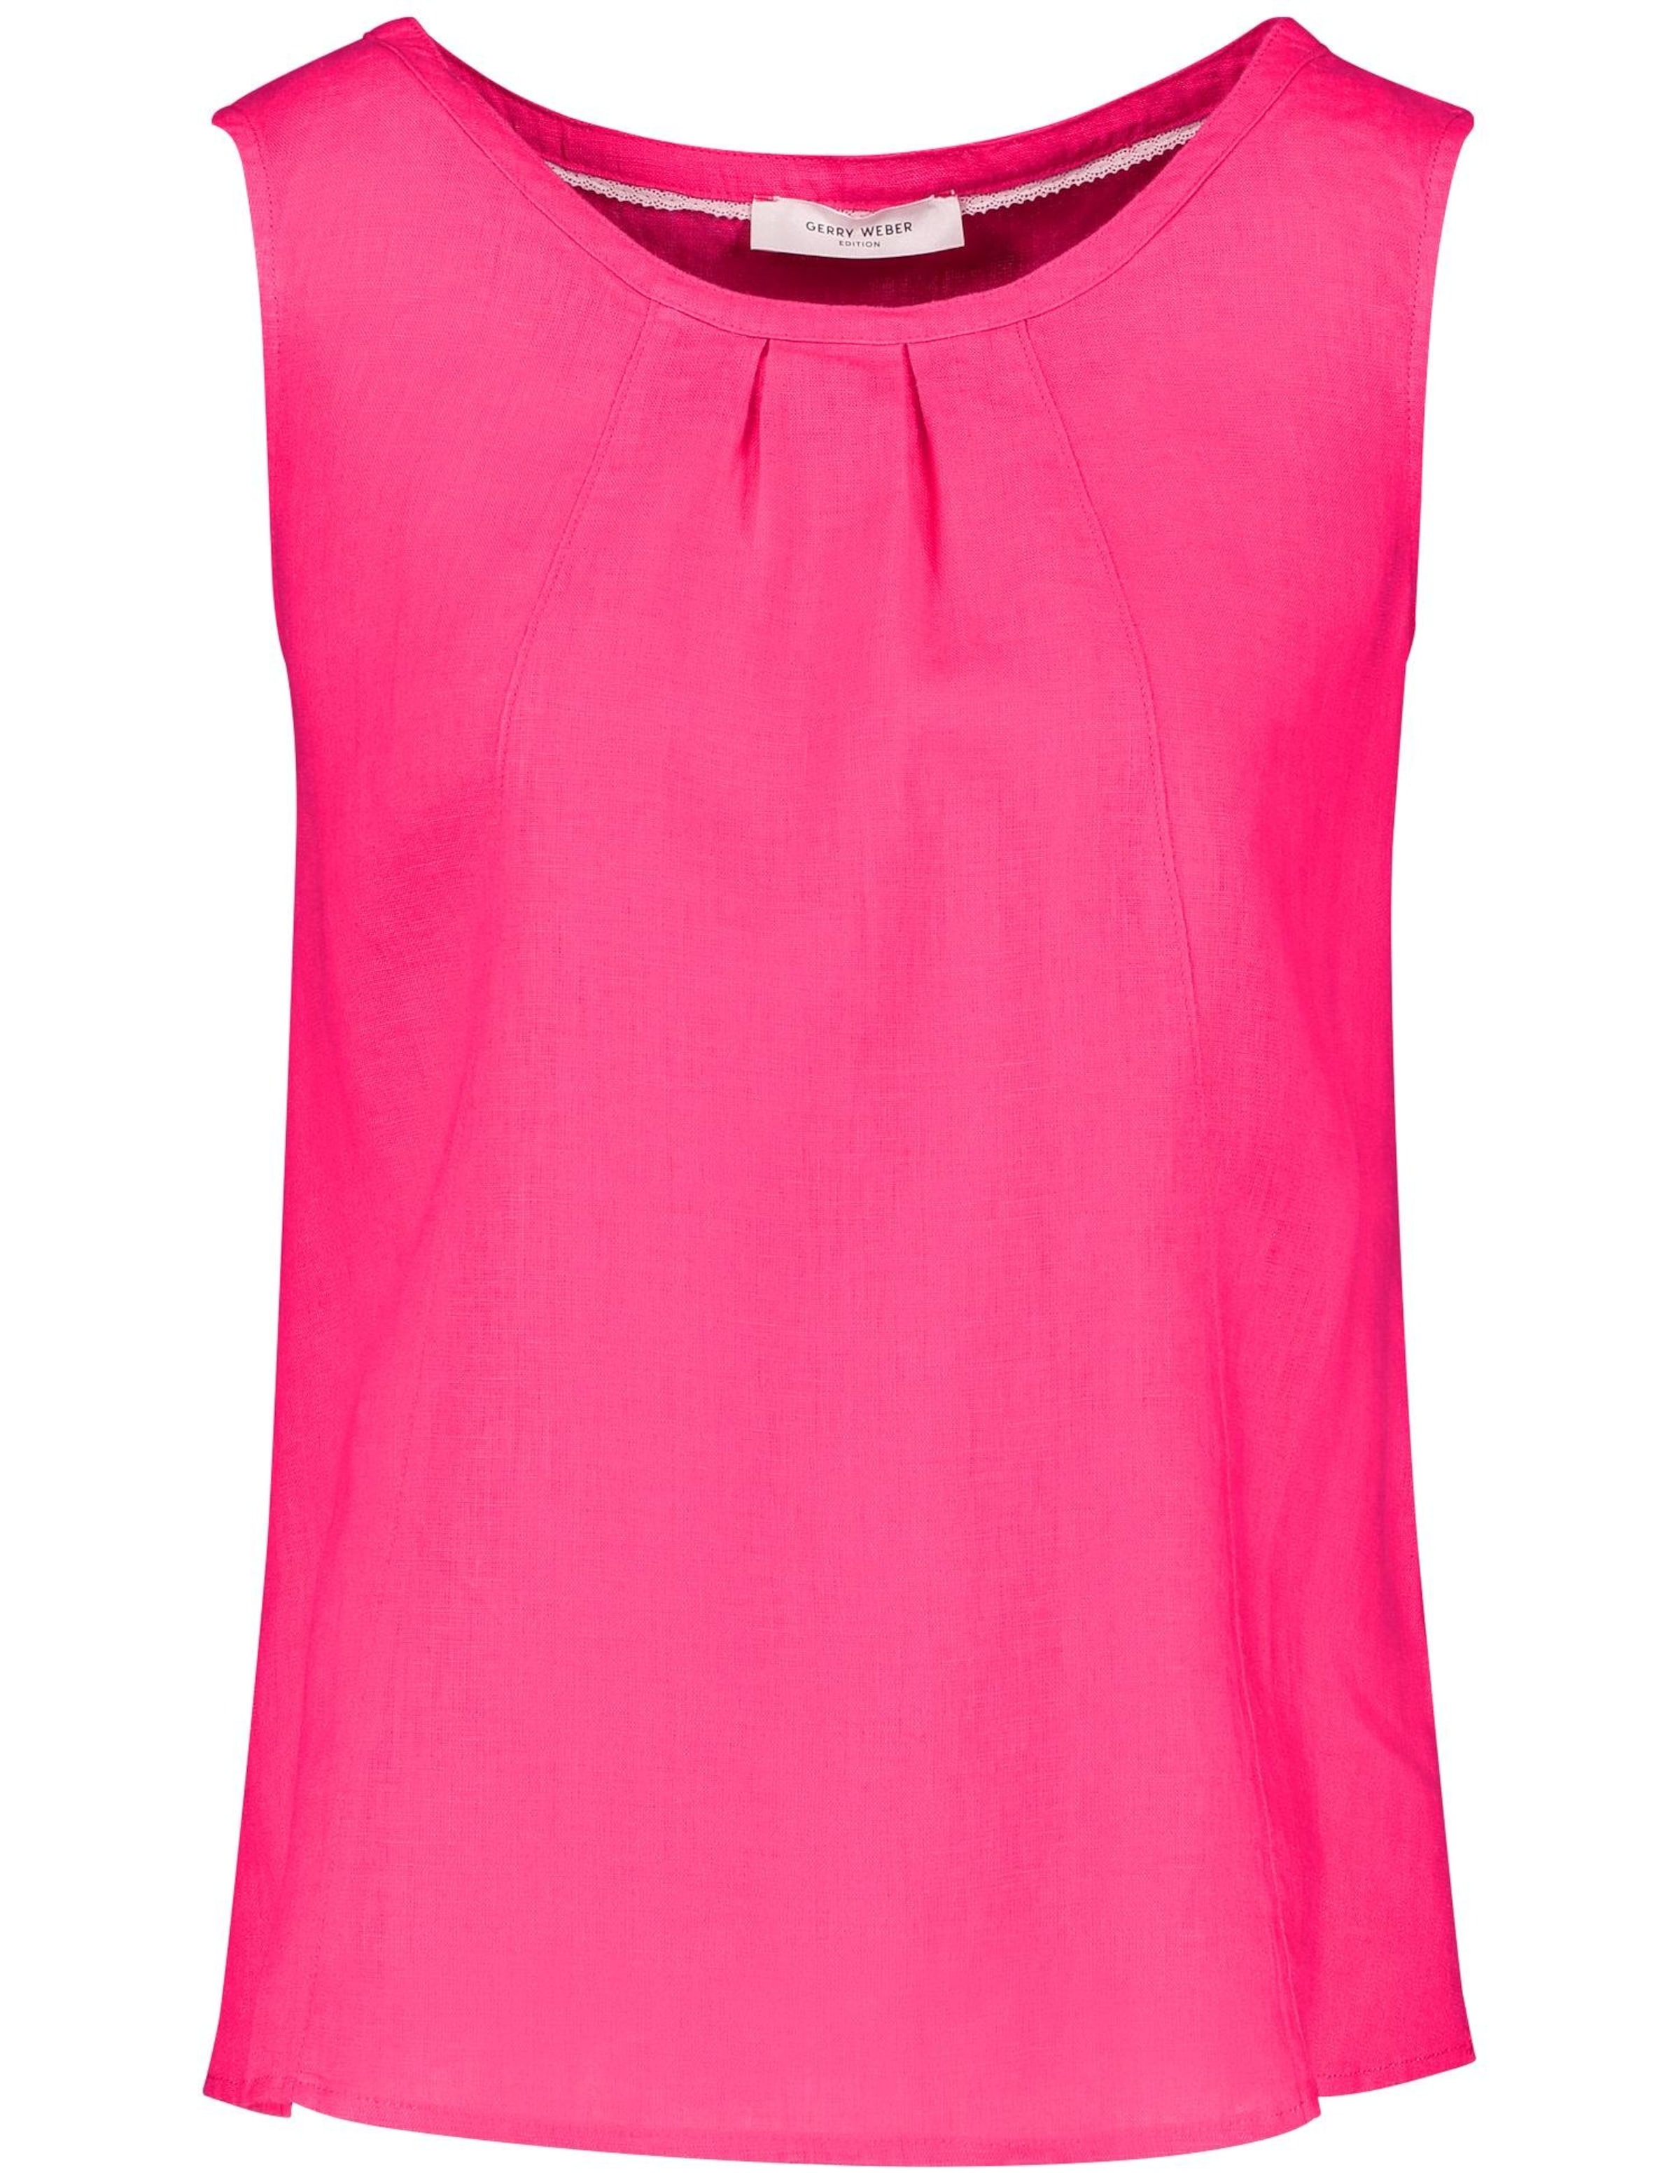 Bluse Weber Bluse Gerry Bluse In Pinkmeliert Gerry In Weber Gerry Pinkmeliert Weber In eH2EDI9WY